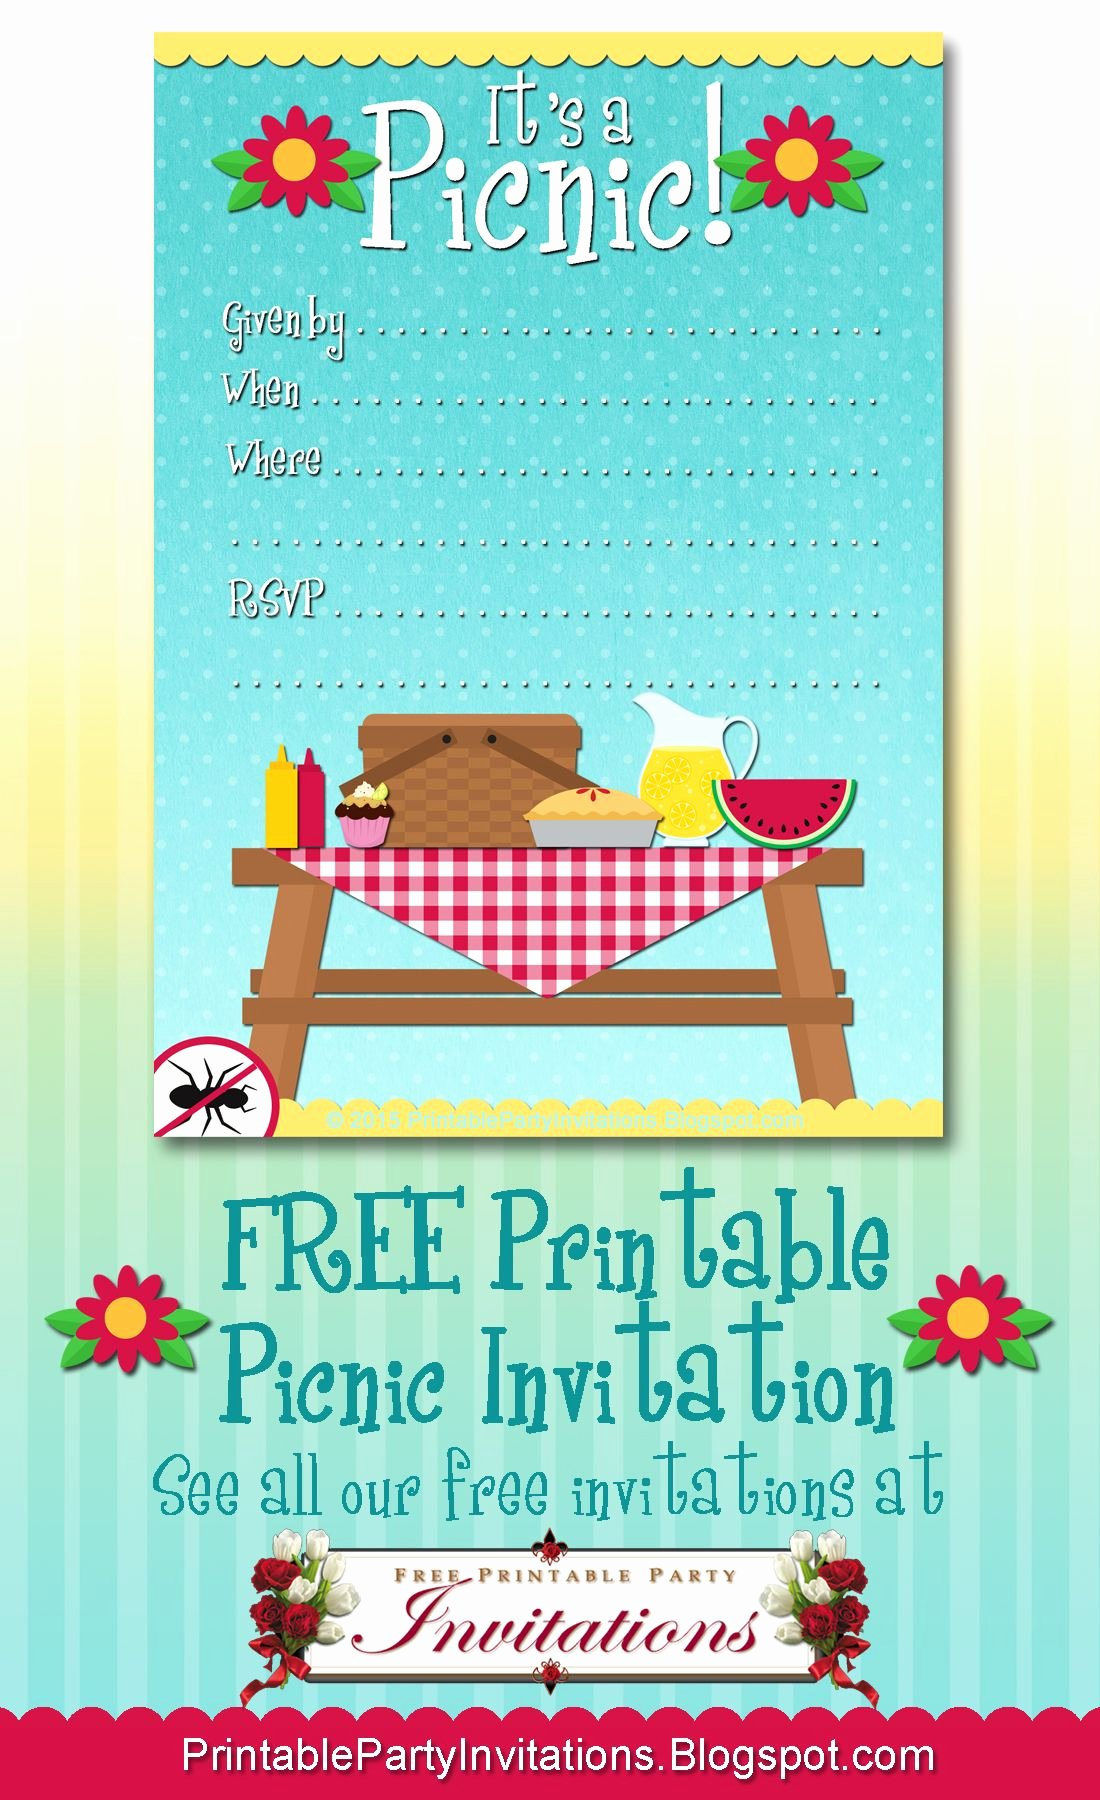 Free Picnic Flyer Template Luxury Free Printable Picnic Invitation